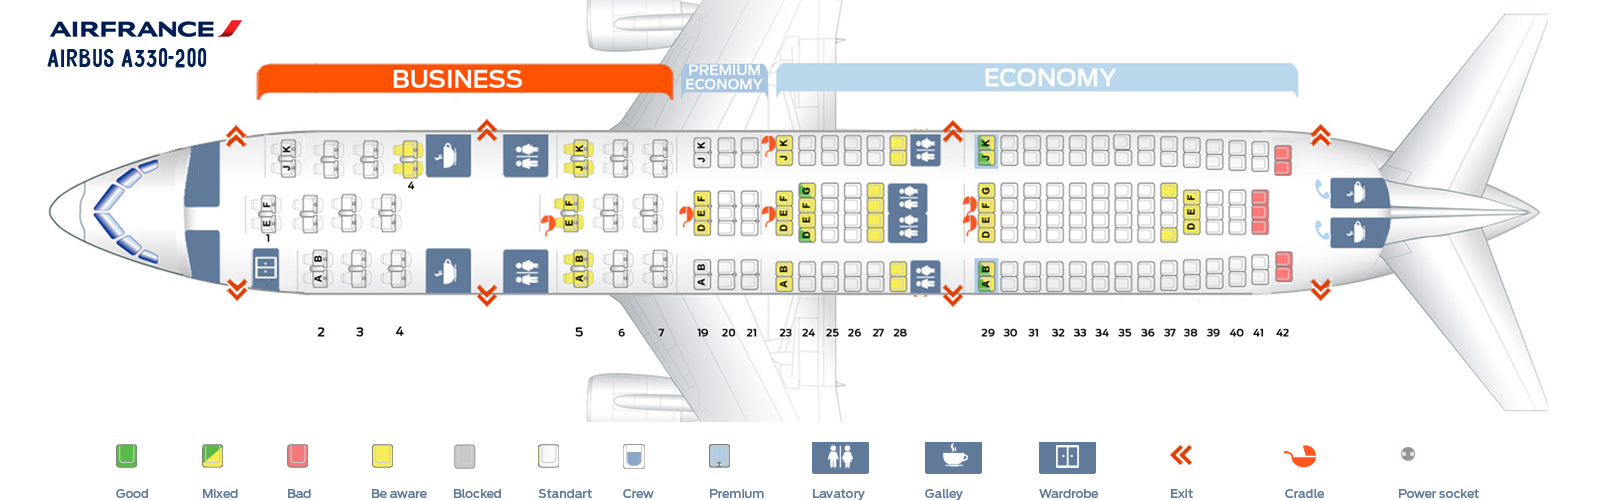 Seat Map Airbus A330-200 Air France